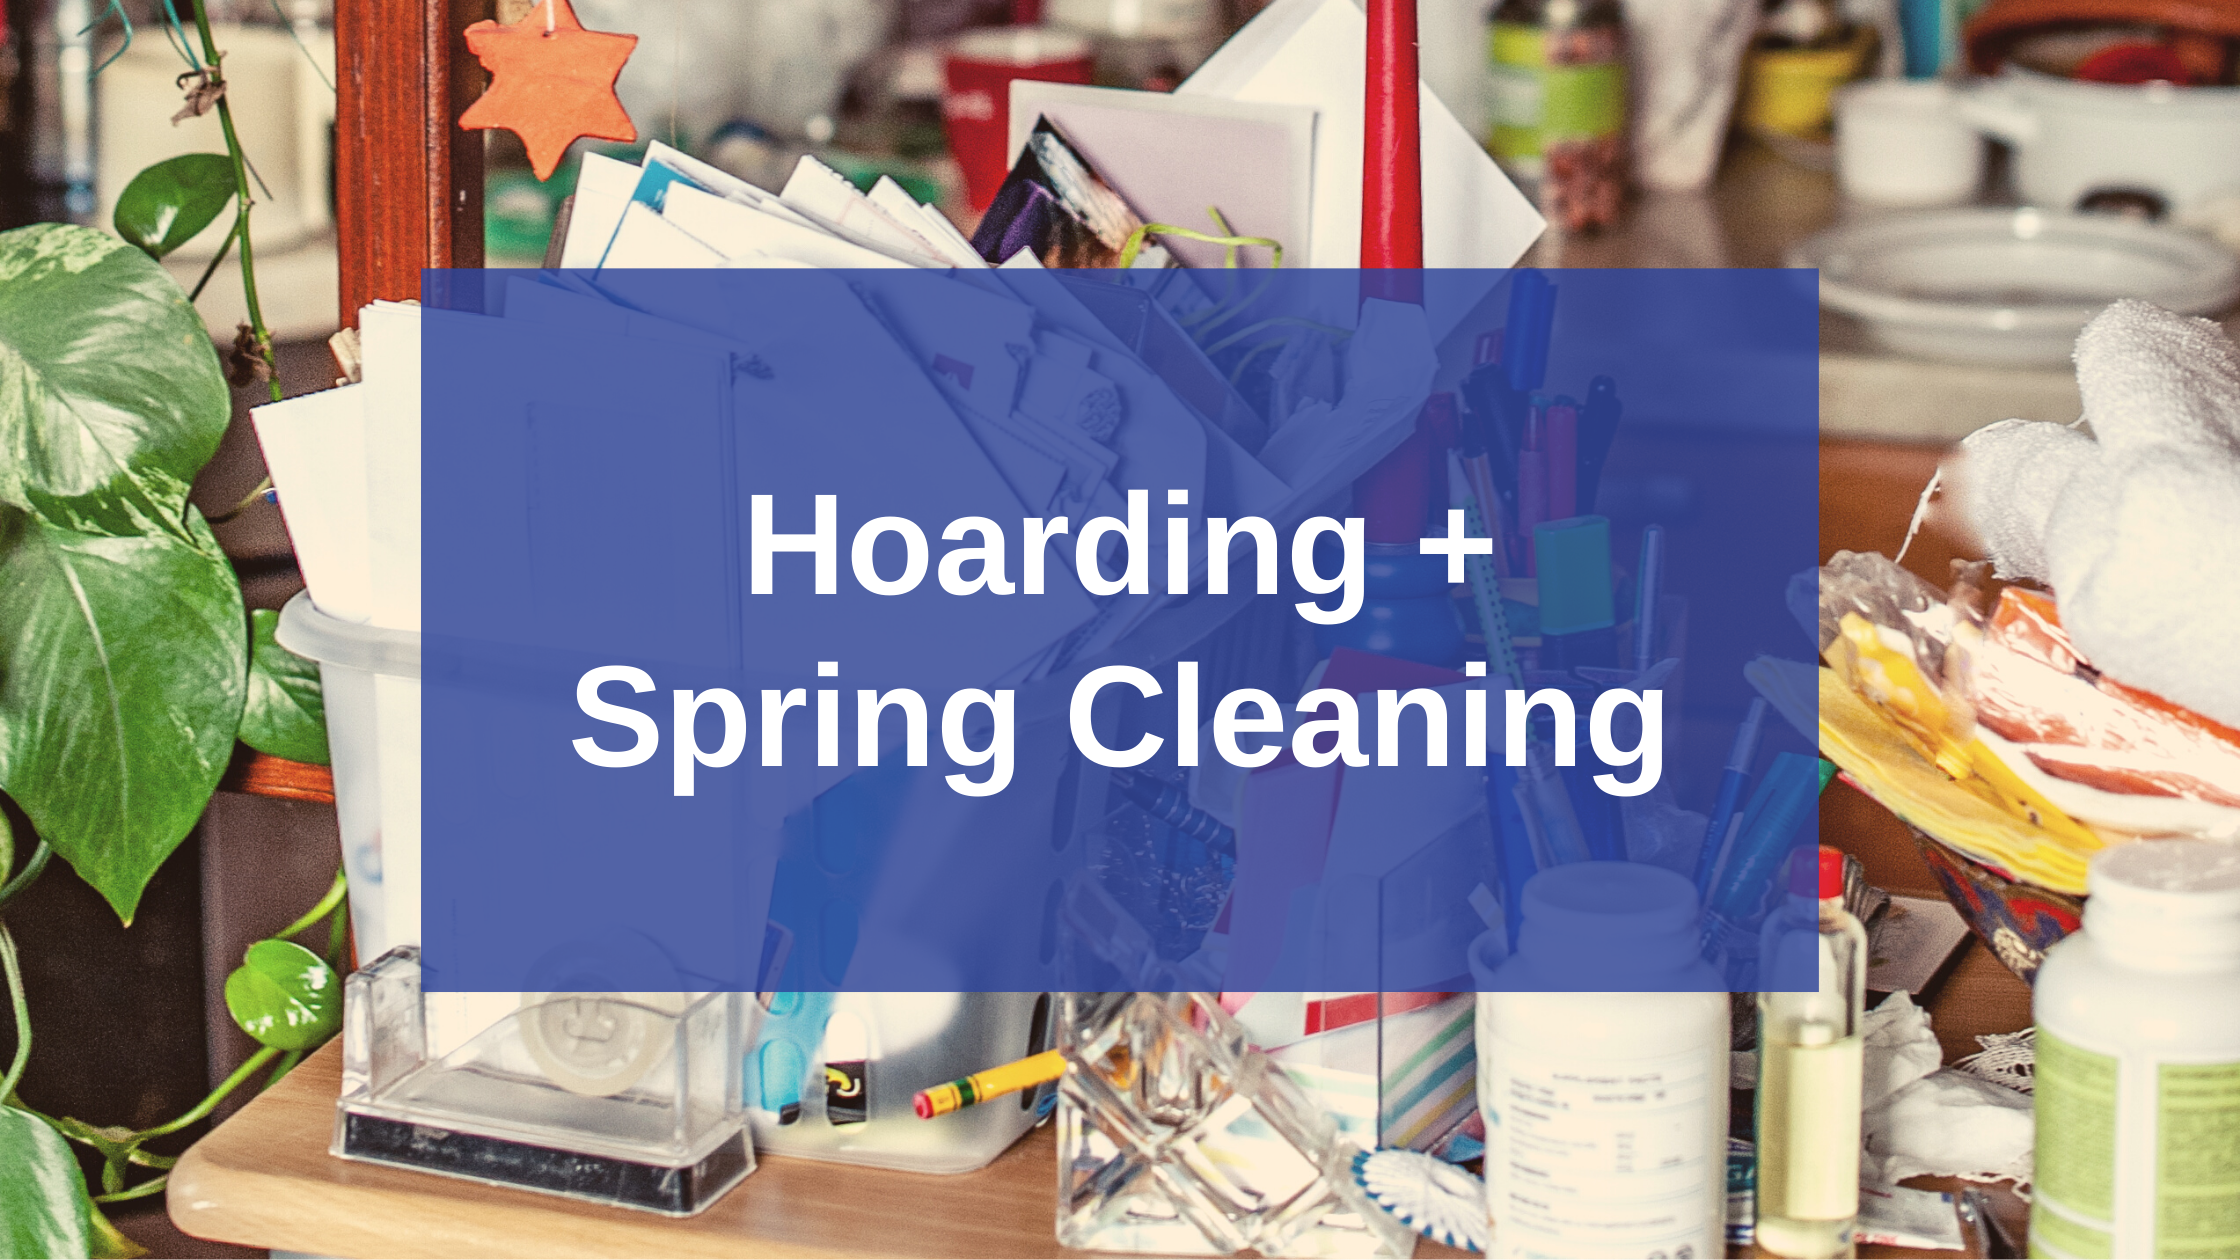 Hoarding and Spring Cleaning with Bio-One